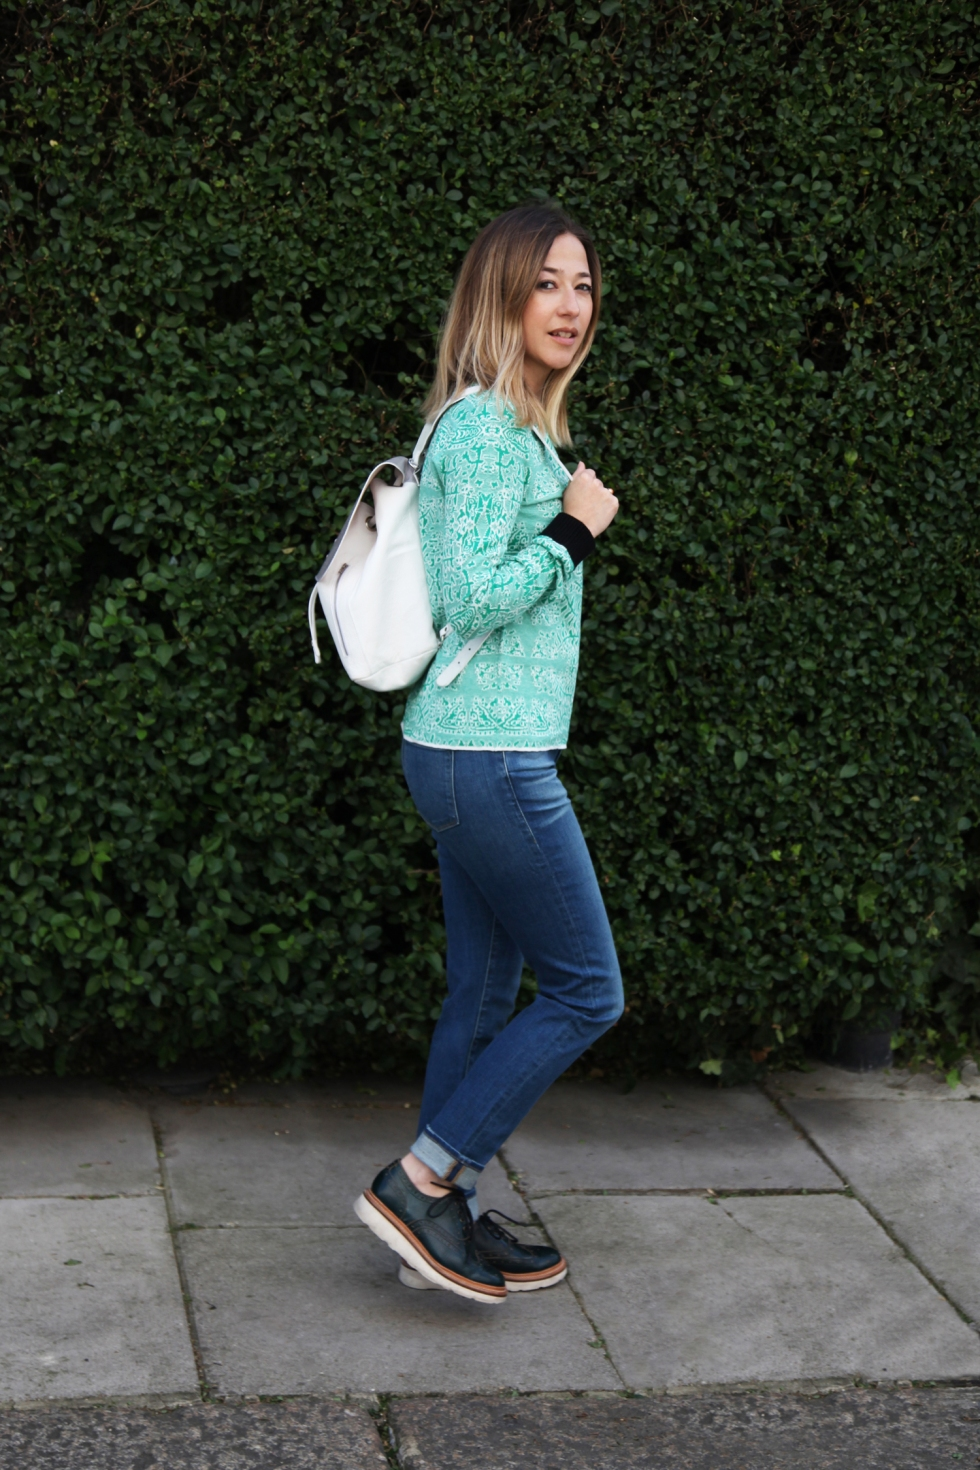 En Brogue pretends to do a bit of modelling...jumper, £xx, by Leon & Harper Maben (BUY ME HERE!), jeans, £xx, by Frame Denim (BUY ME HERE!)